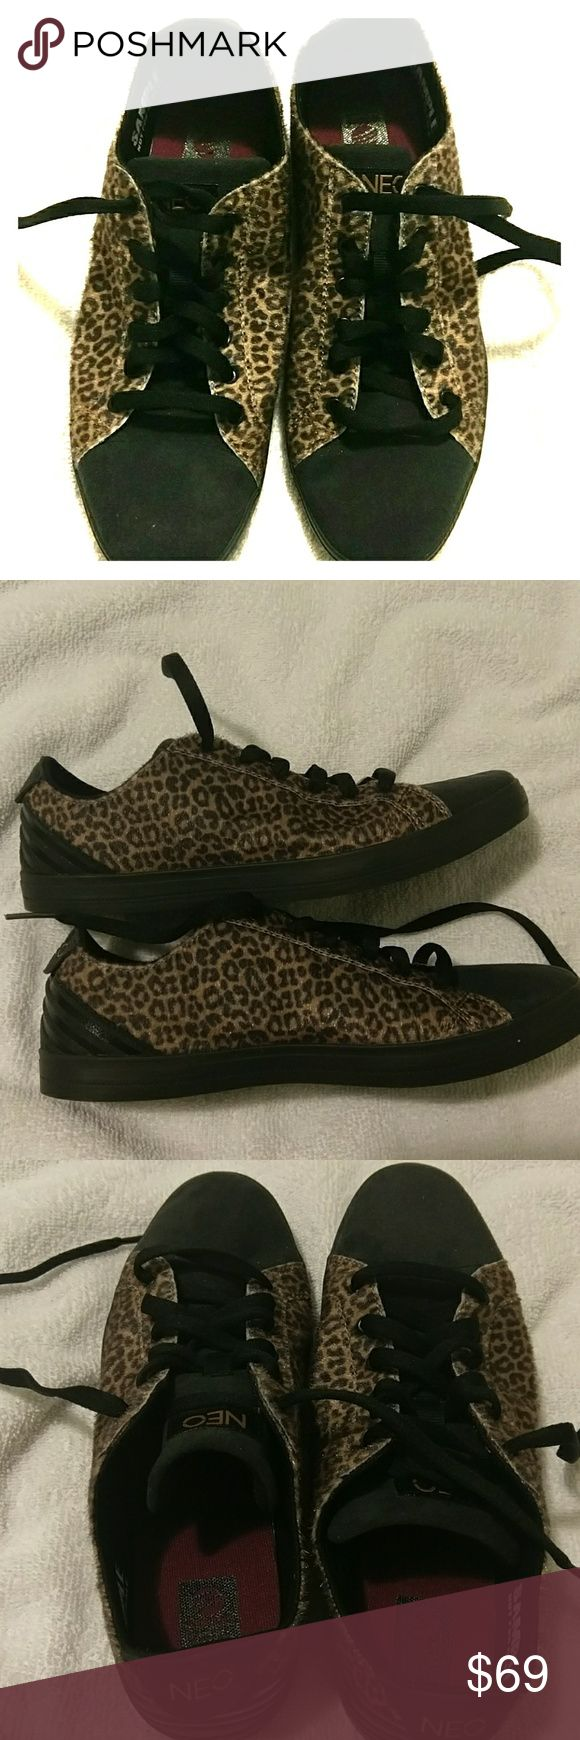 Adidas Neo leopard faux fur shoes Women's 7.5 Adidas Neo leopard print faux fur suede shoes. These were a sample, not sold in stores. Black suede rounded toe. Burgandy interior. The sides have faux fur cheetah print that has a copper sheen. Black shoelaces. In excellent unused condition. US women's 7.5, UK 6. Unique. Comfortable. Dress up. Trainers. Sneakers. Cheetah, leopard, copper, Adidas Shoes Sneakers